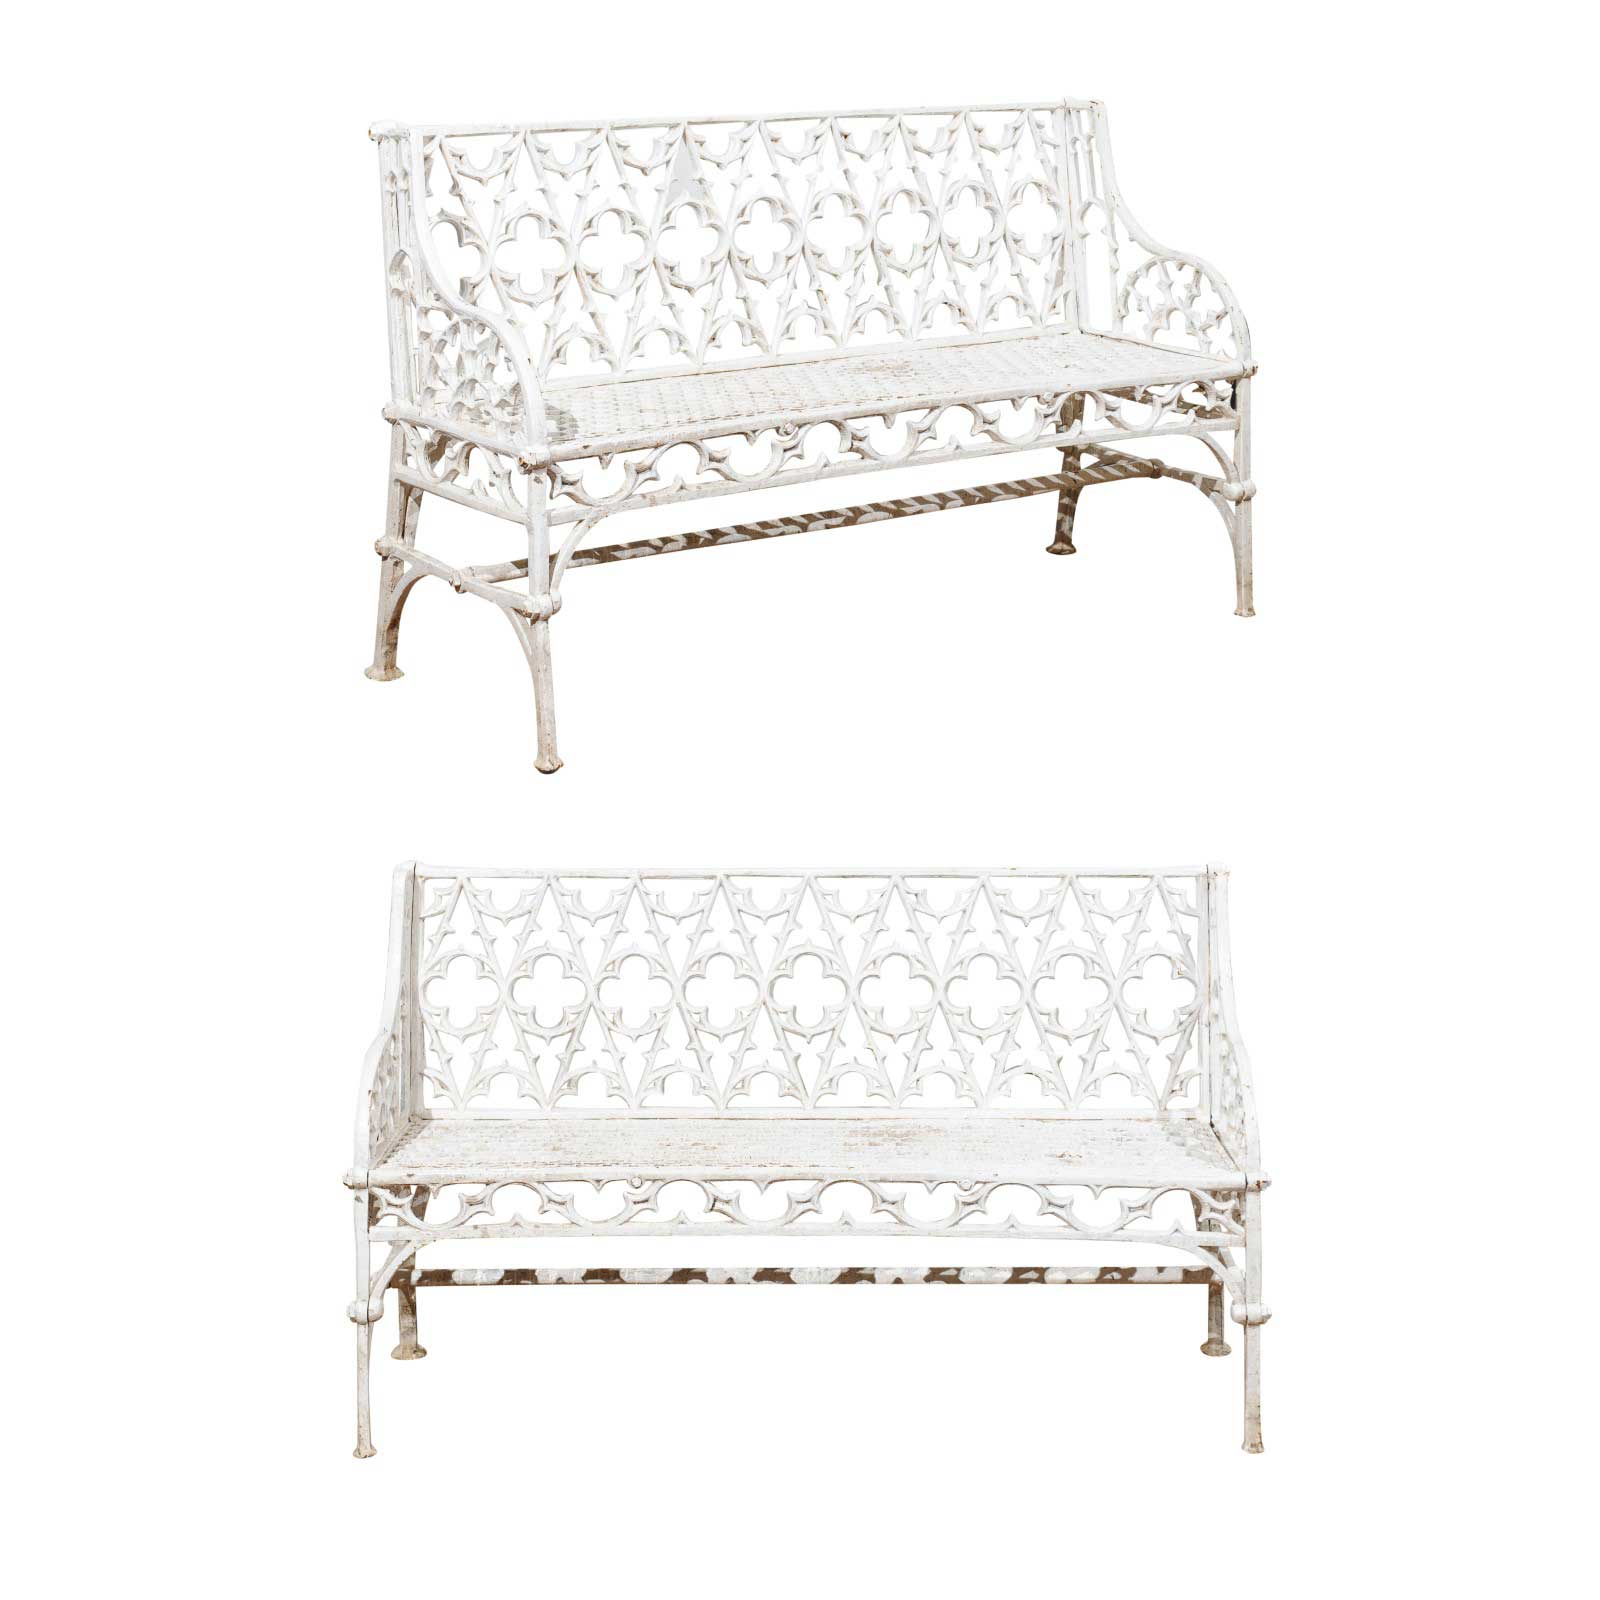 Pair Of 19th C French Gothic Cast Iron Benches